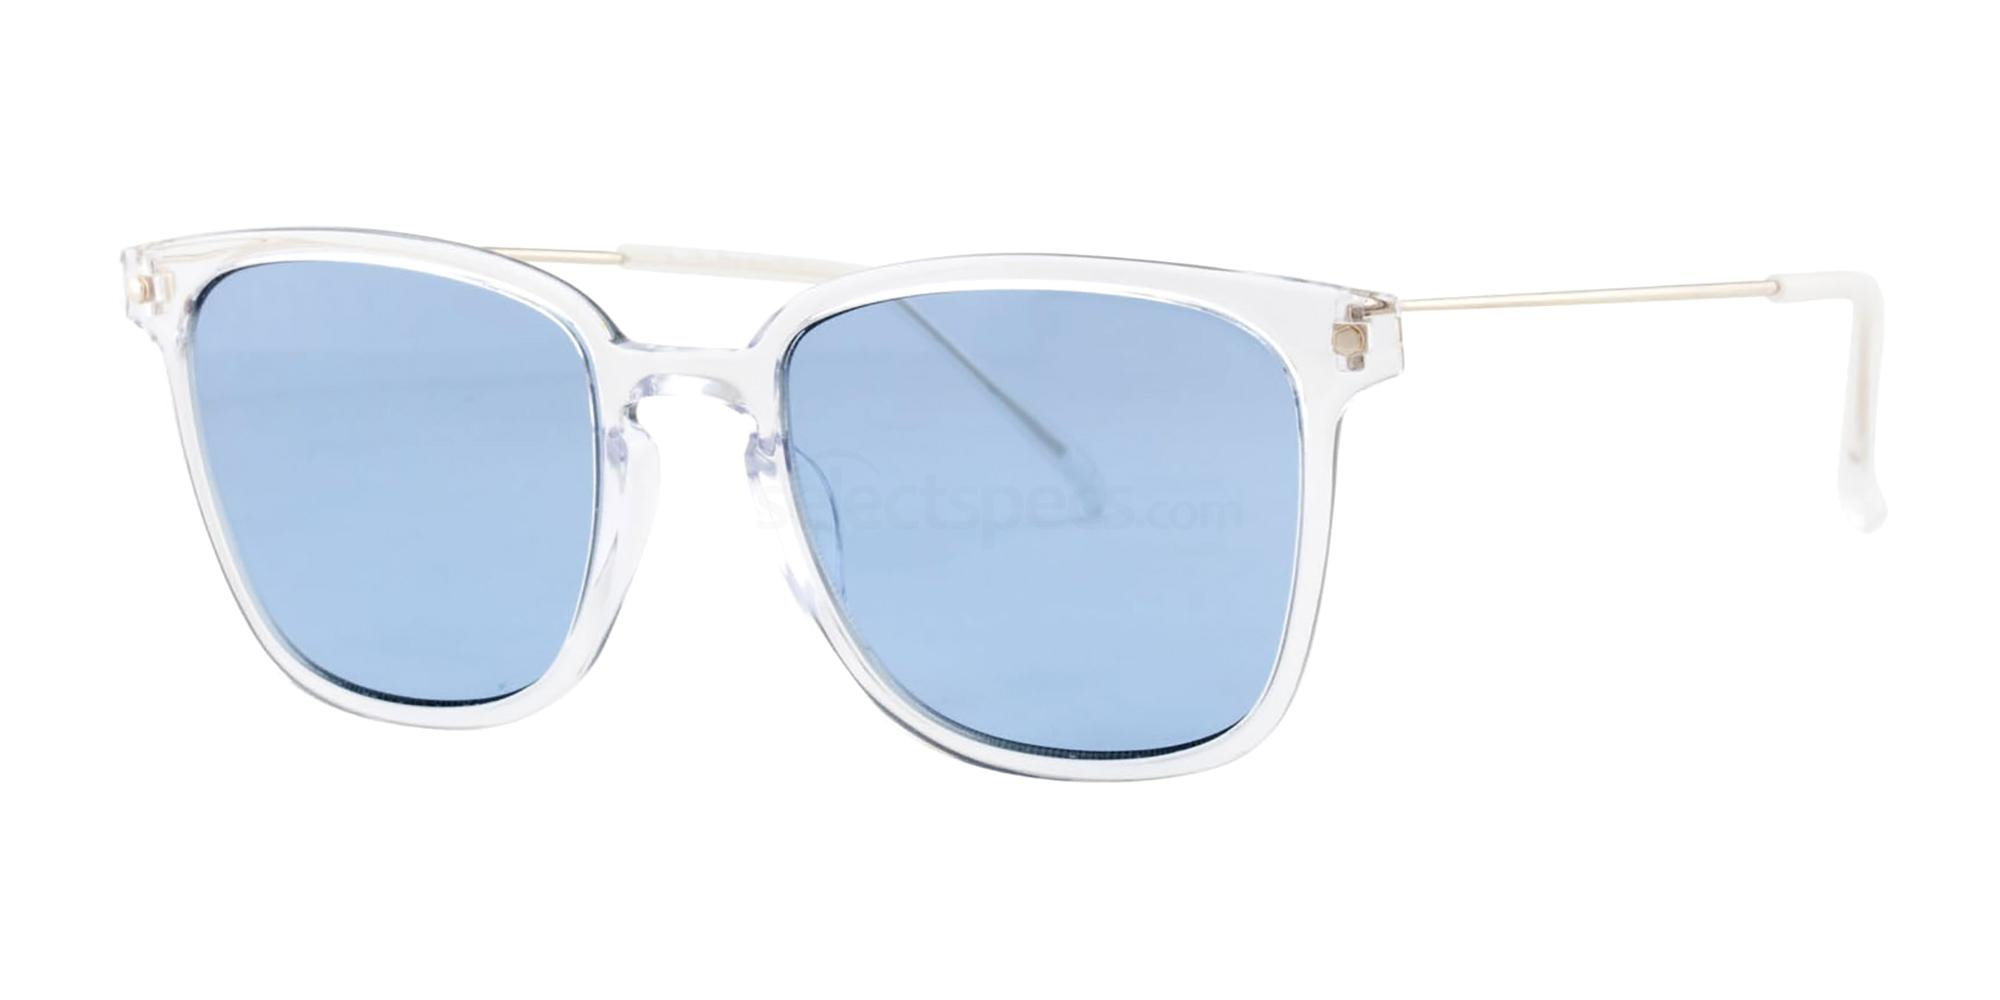 F250 STS-91004 Sunglasses, StepperS